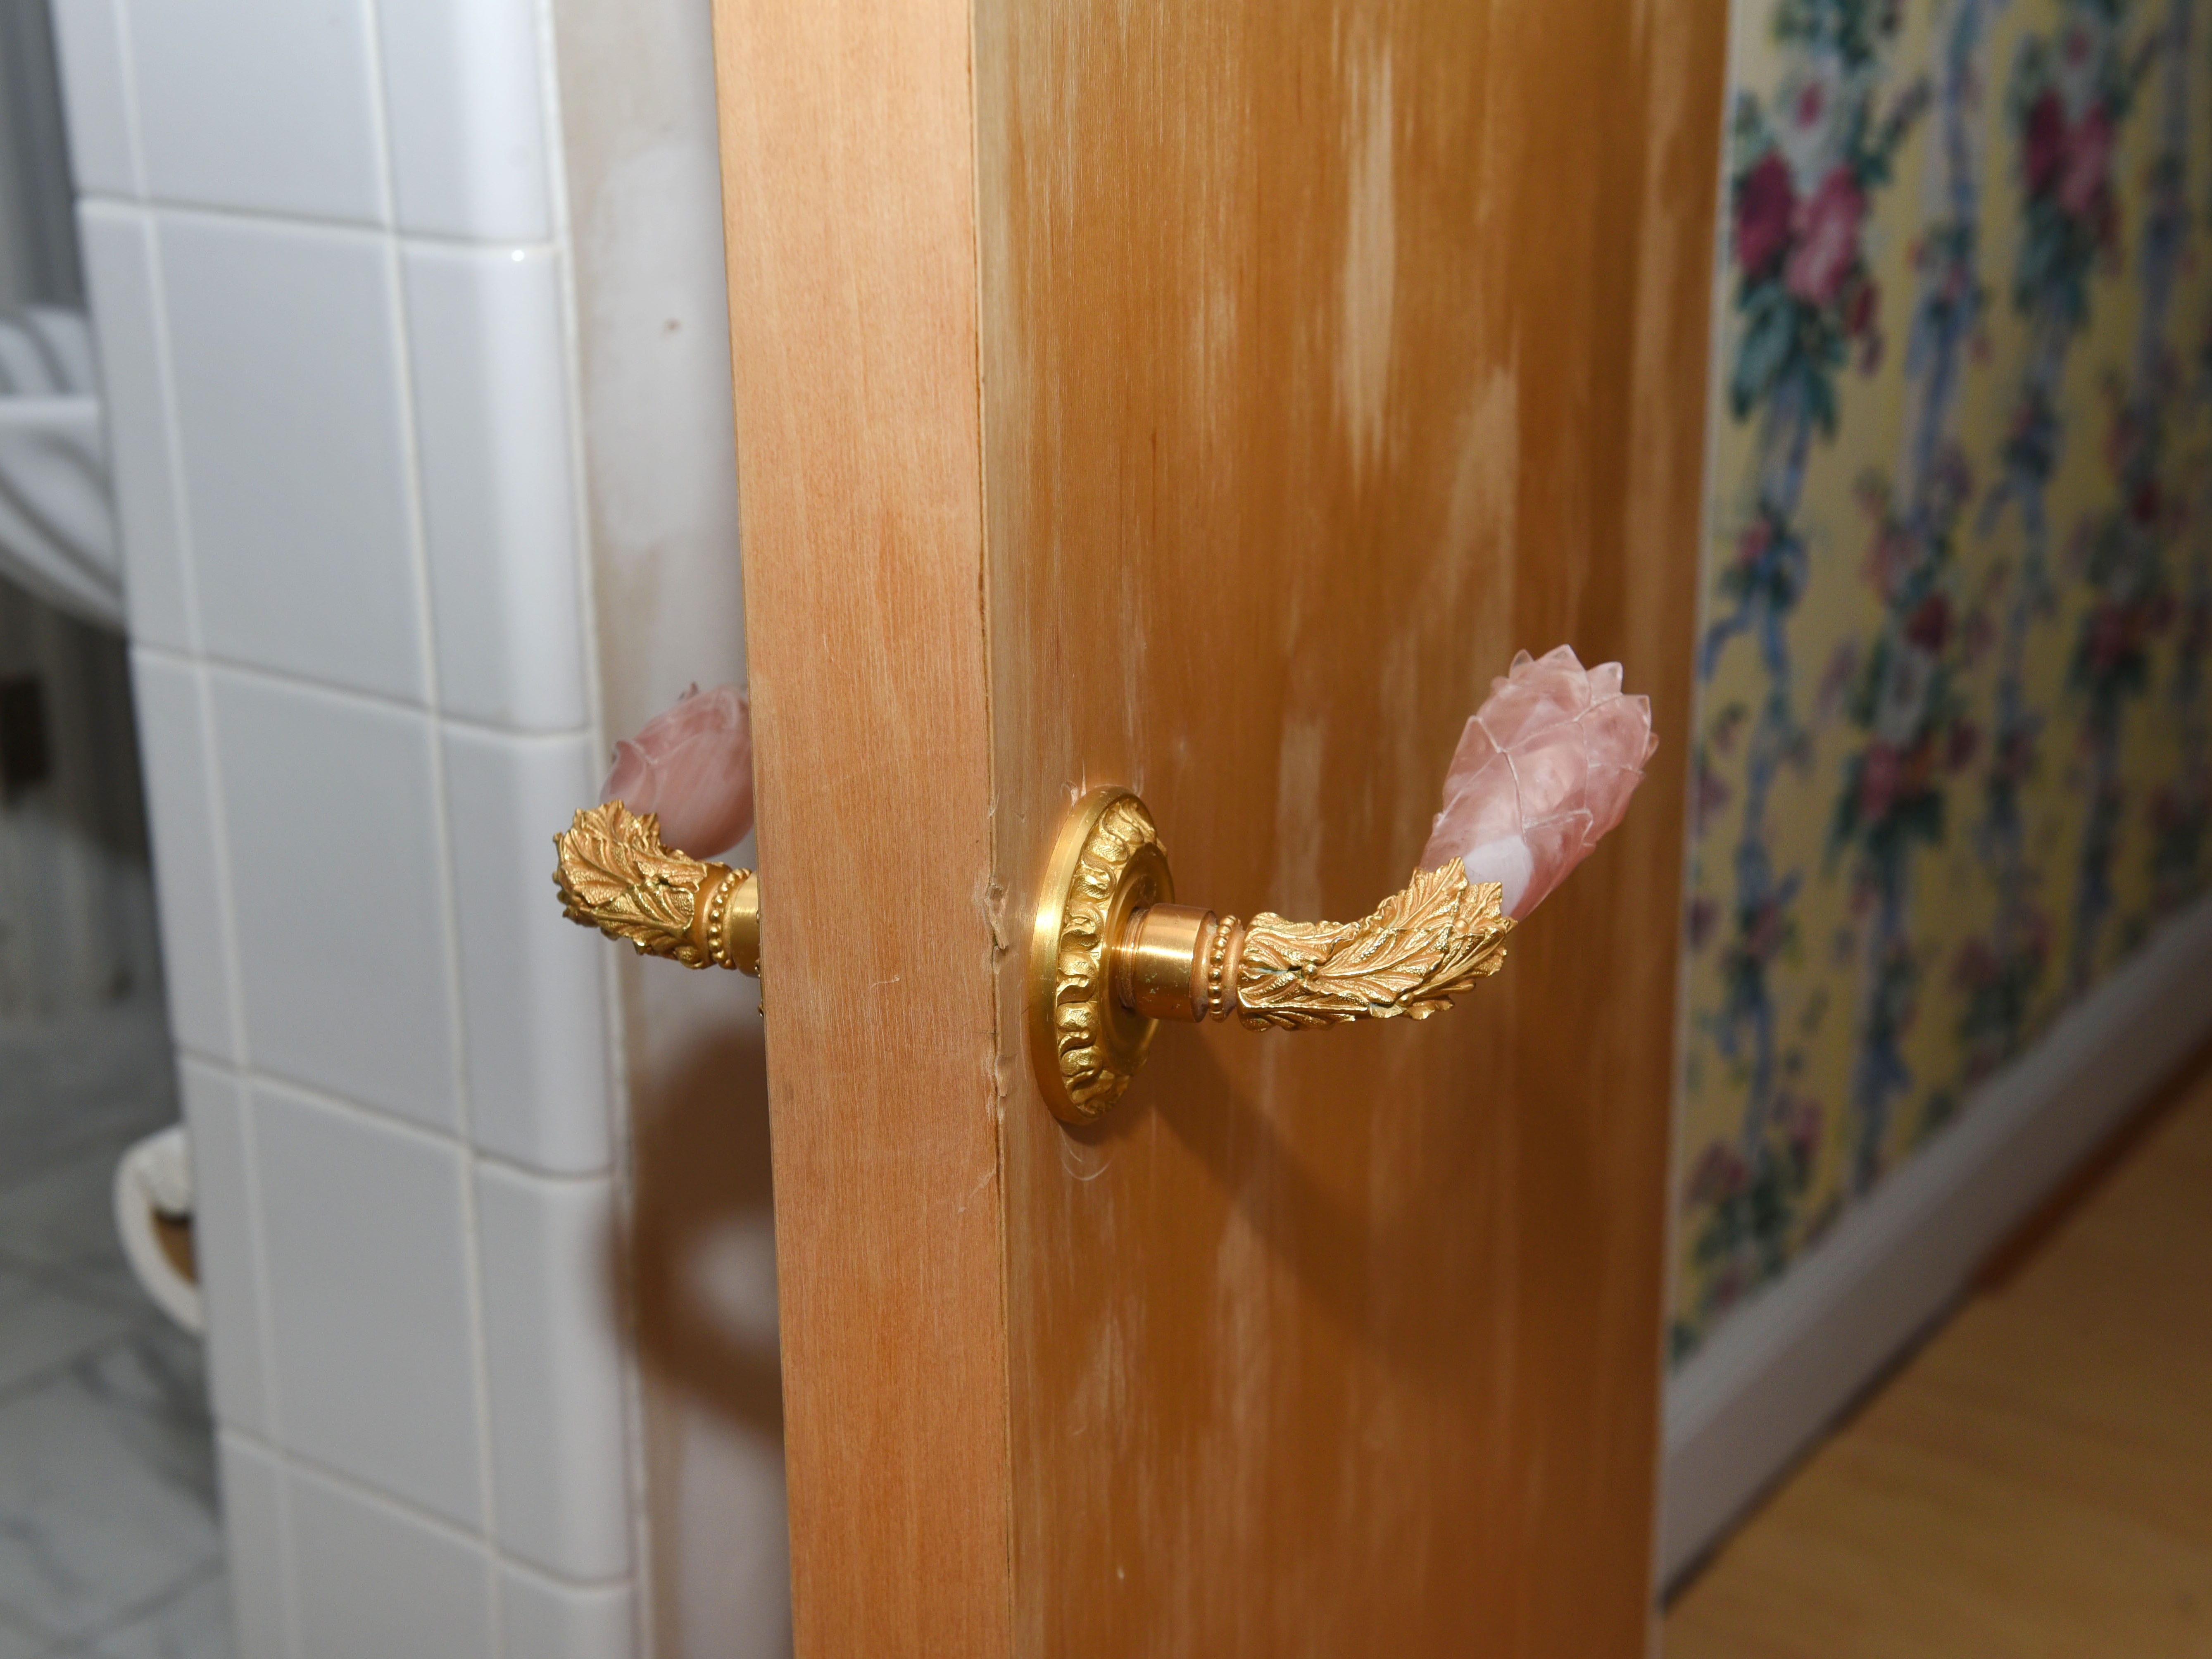 The door handles to Aretha Franklin's bedroom are distinctive.